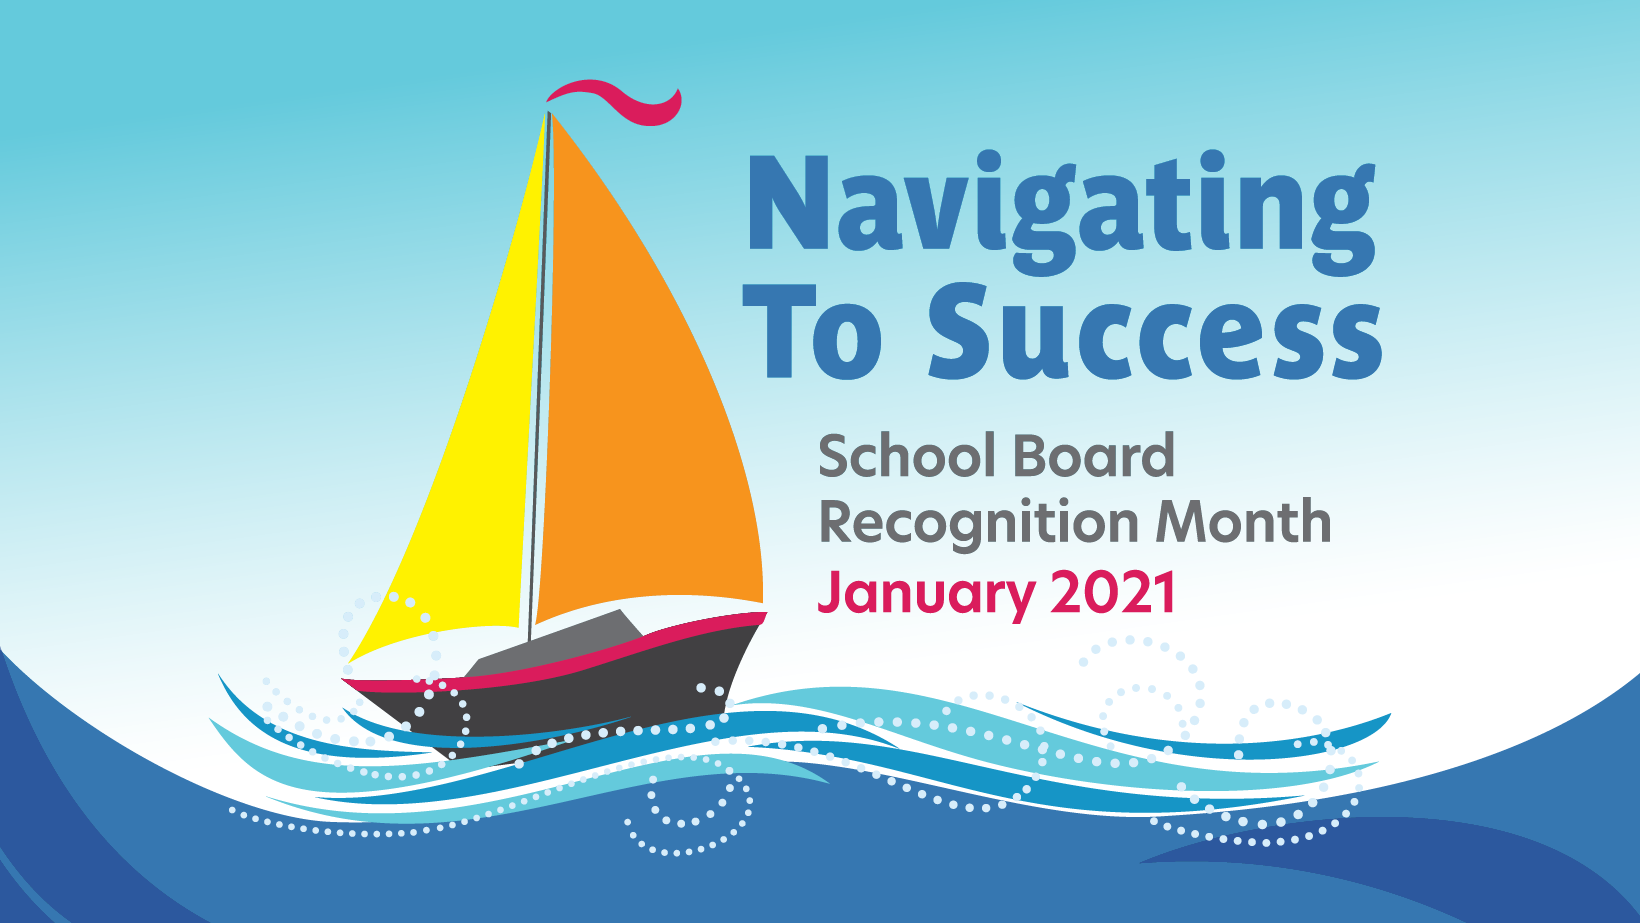 sailboat with yellow sails on big blue waves. Navigating to Success - School Board Recognition Month, January 2021